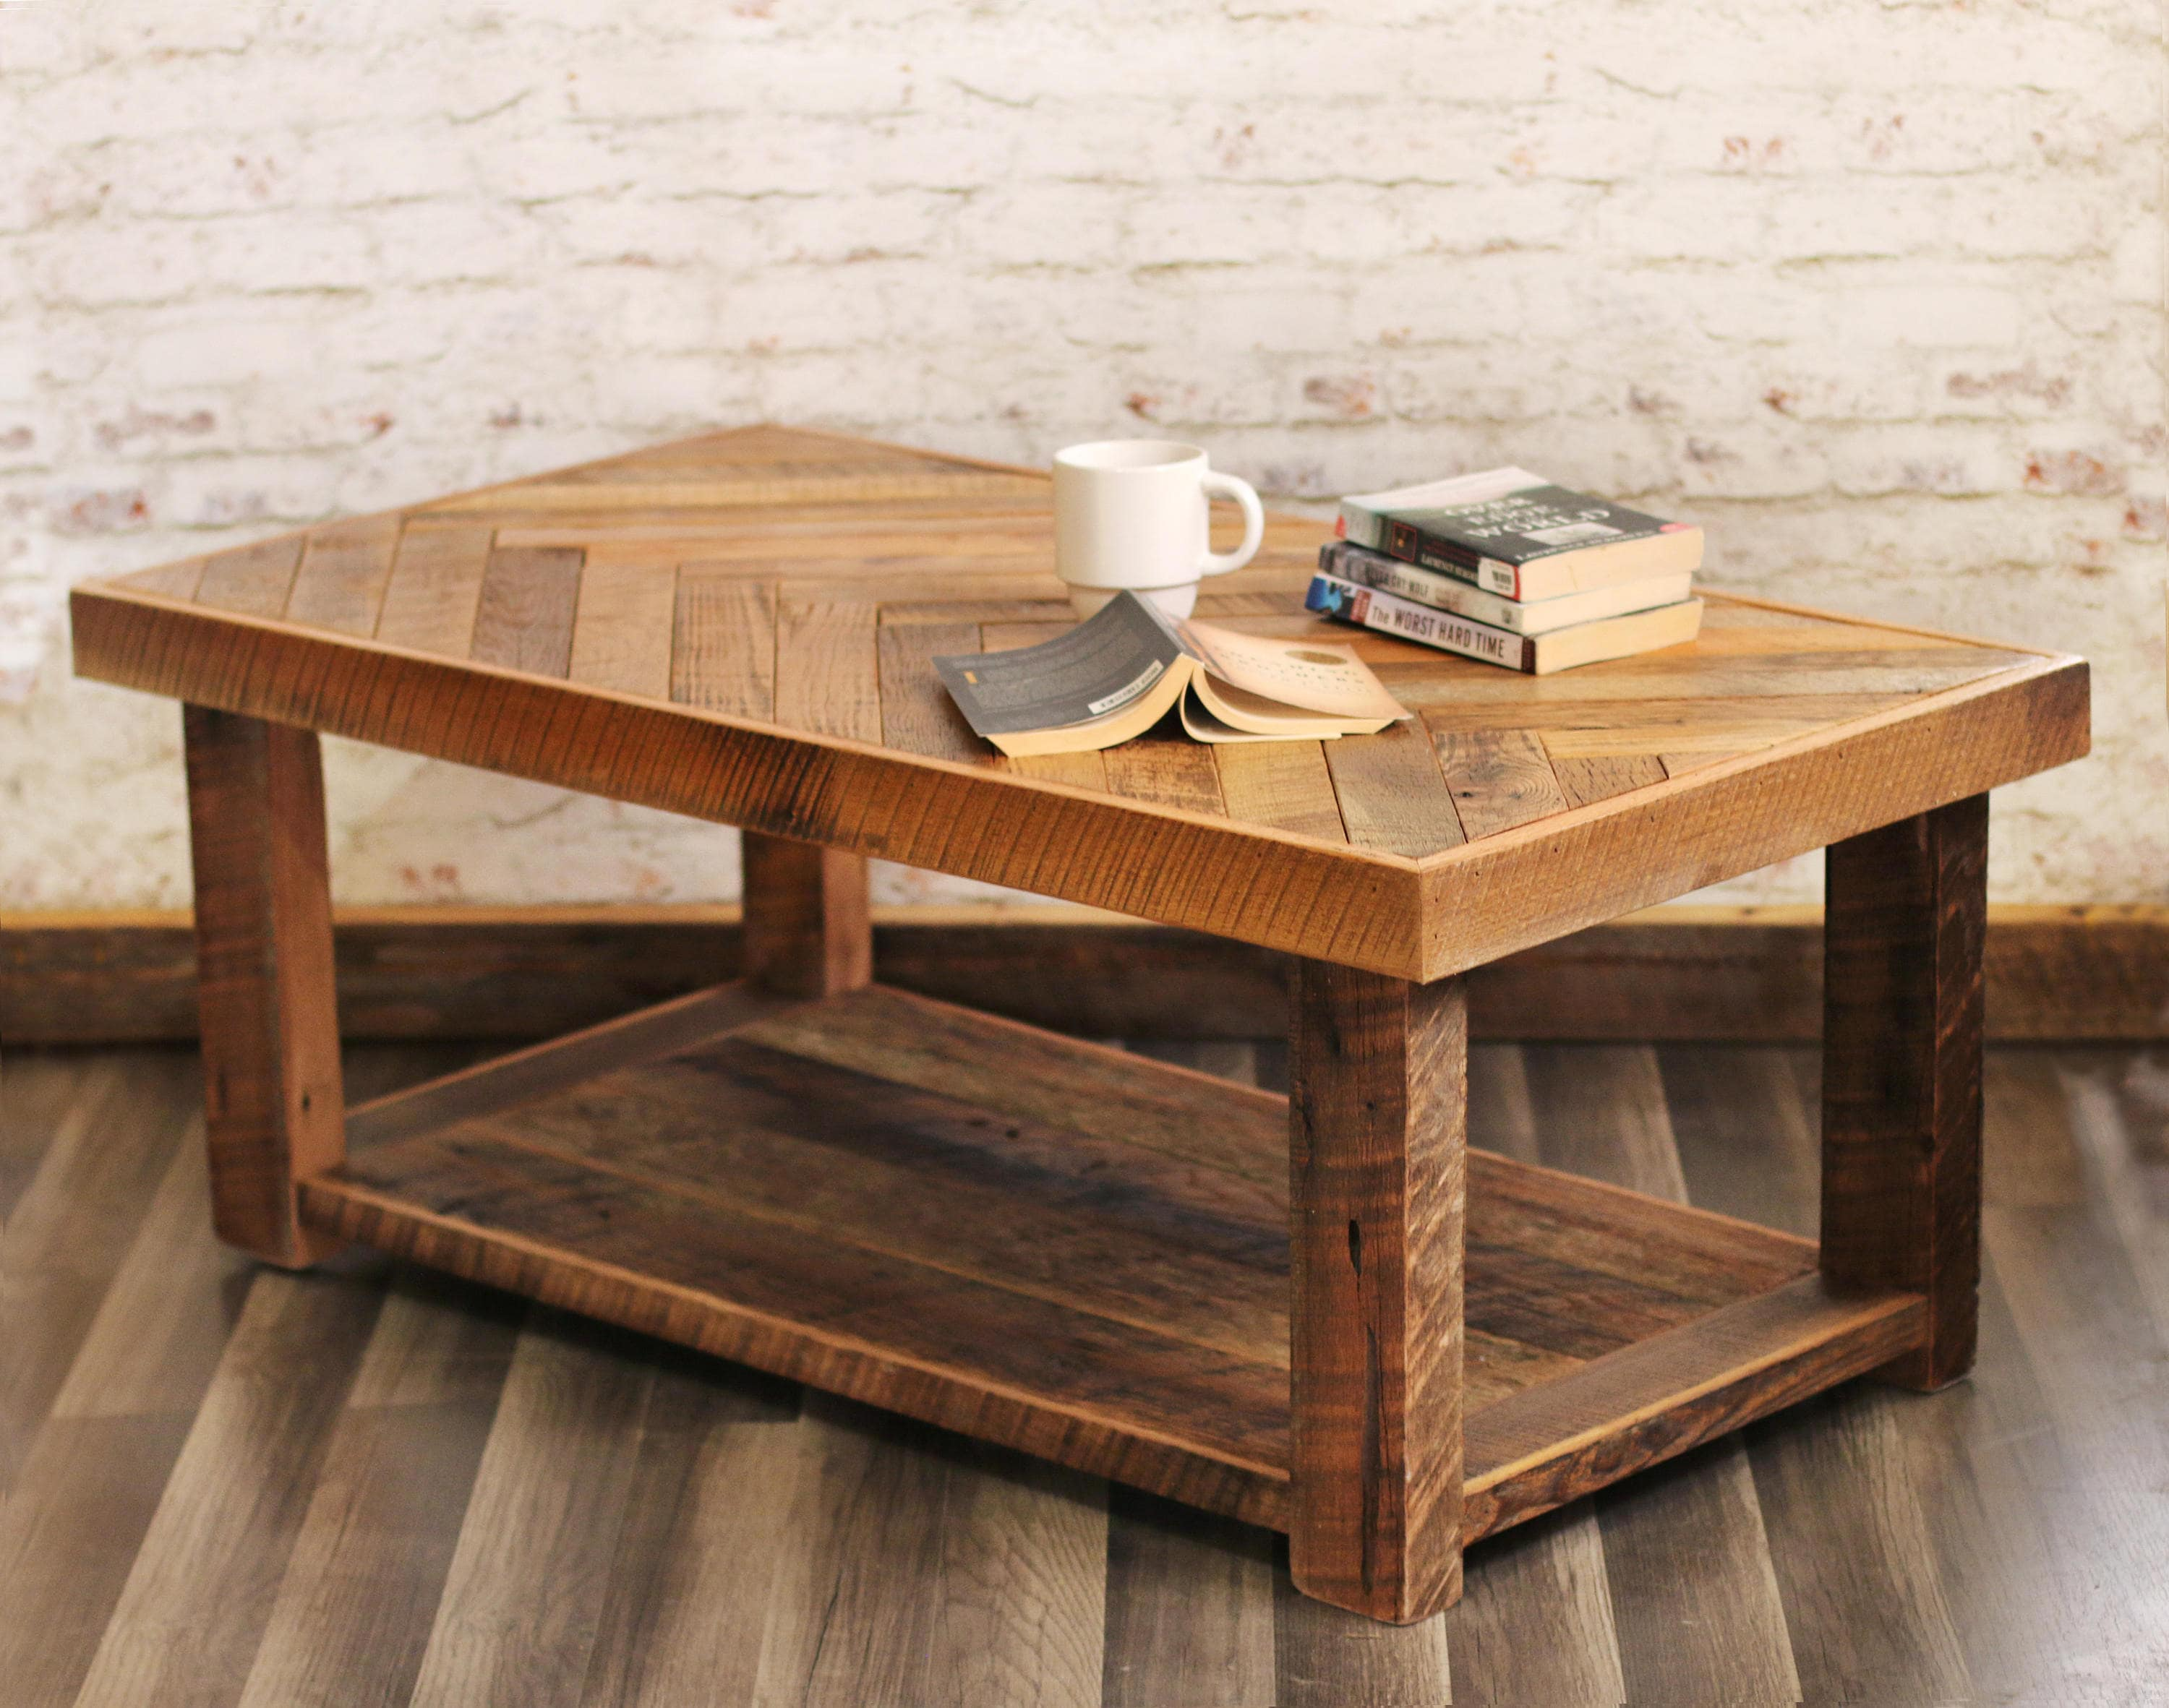 Barn wood coffee table with Bottom Shelf Herringbone table